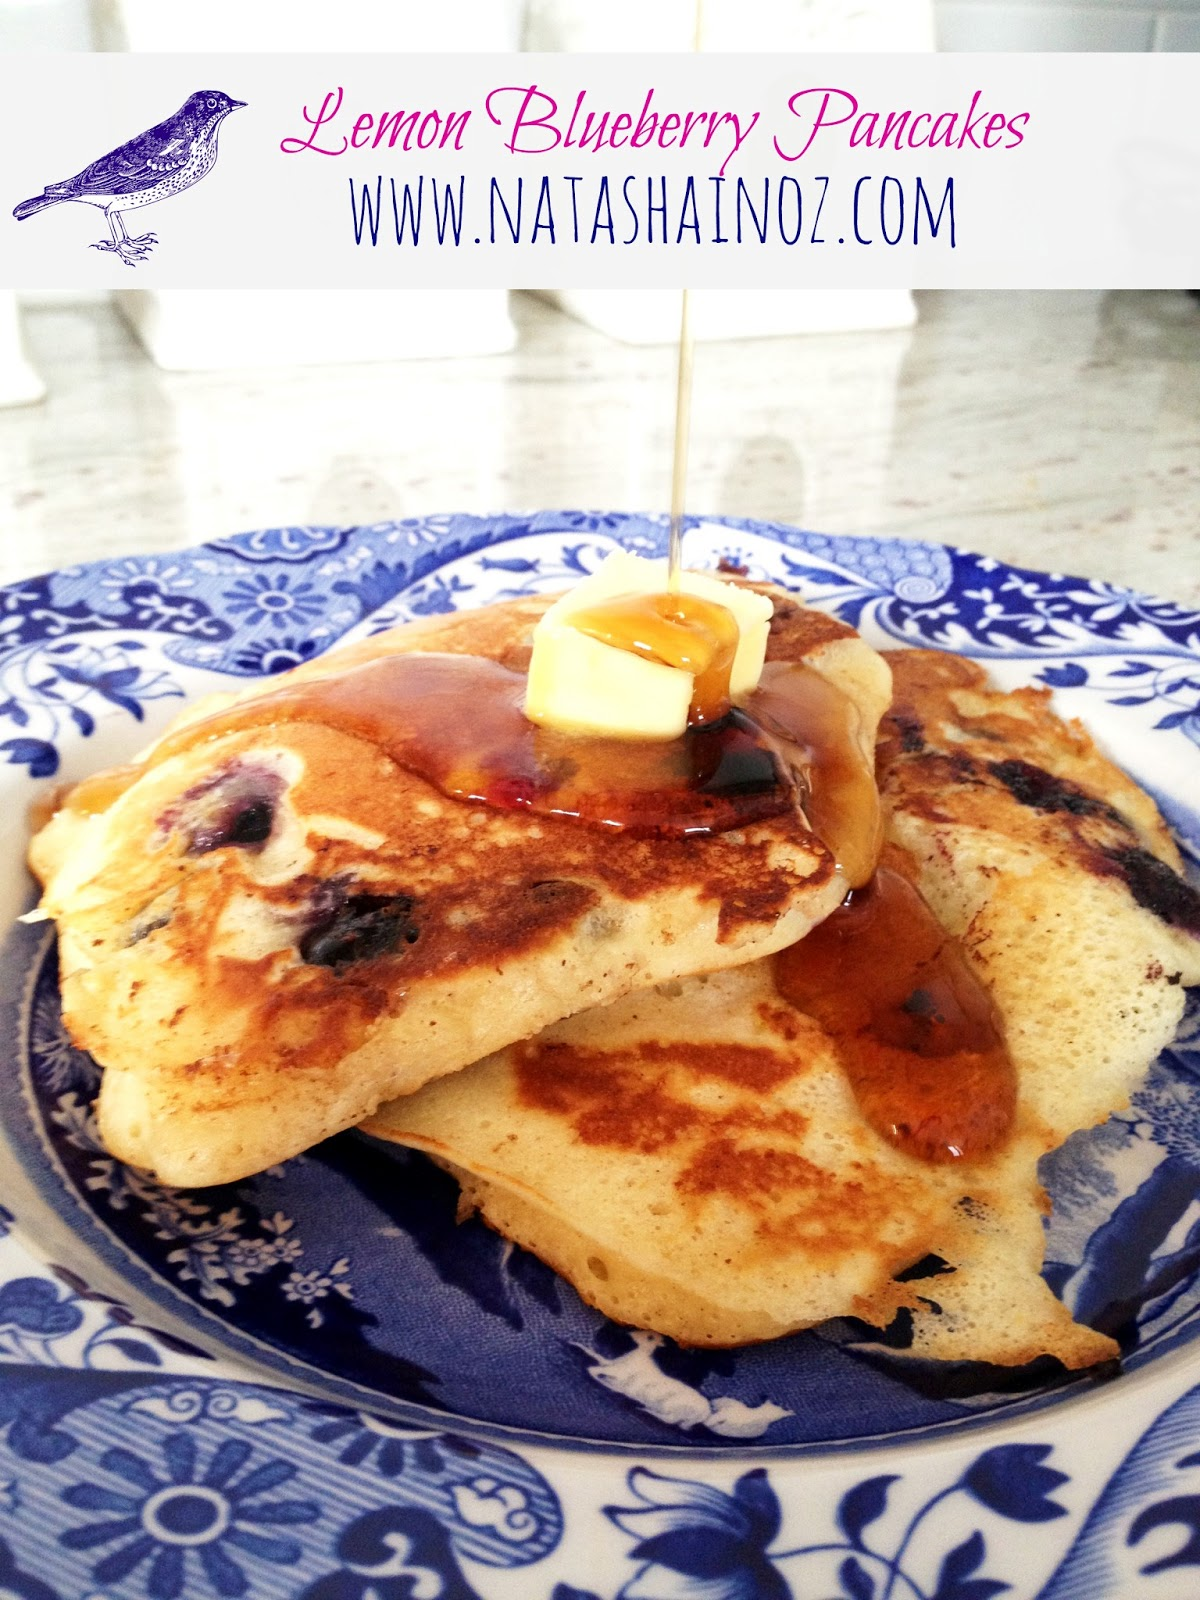 lemon blueberry pancakes 406 x 305 jpeg 33kb lemon blueberry pancakes ...